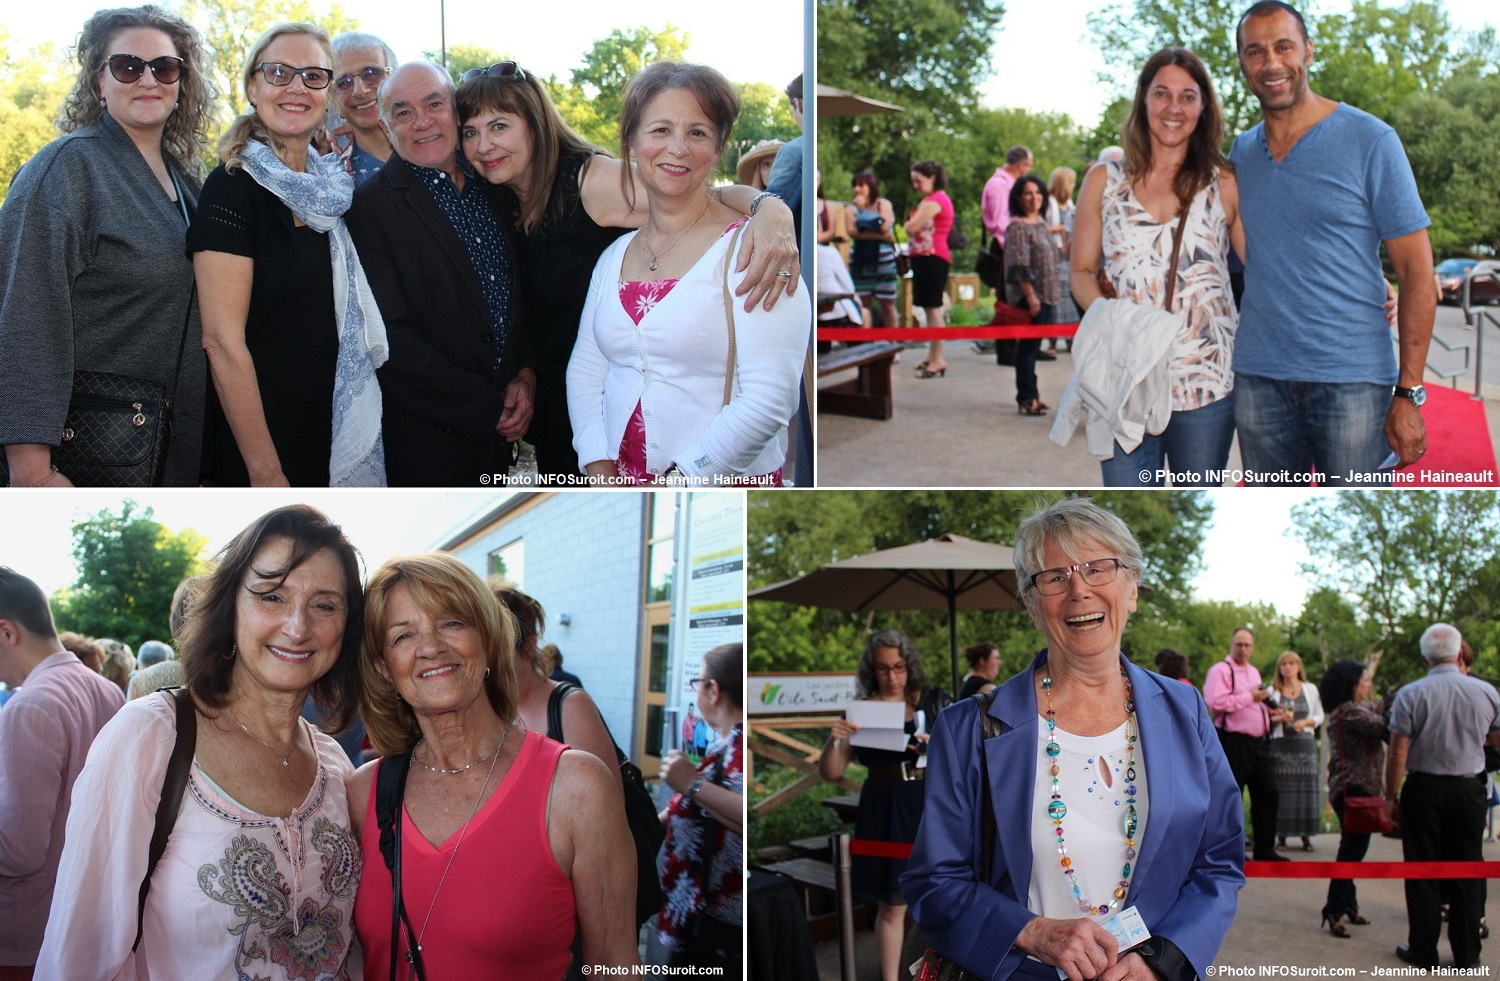 tapis-rouge-2017-invites-theatre-Fracas-a-Chateauguay-Photos-INFOSuroit-Jeannine_Haineault